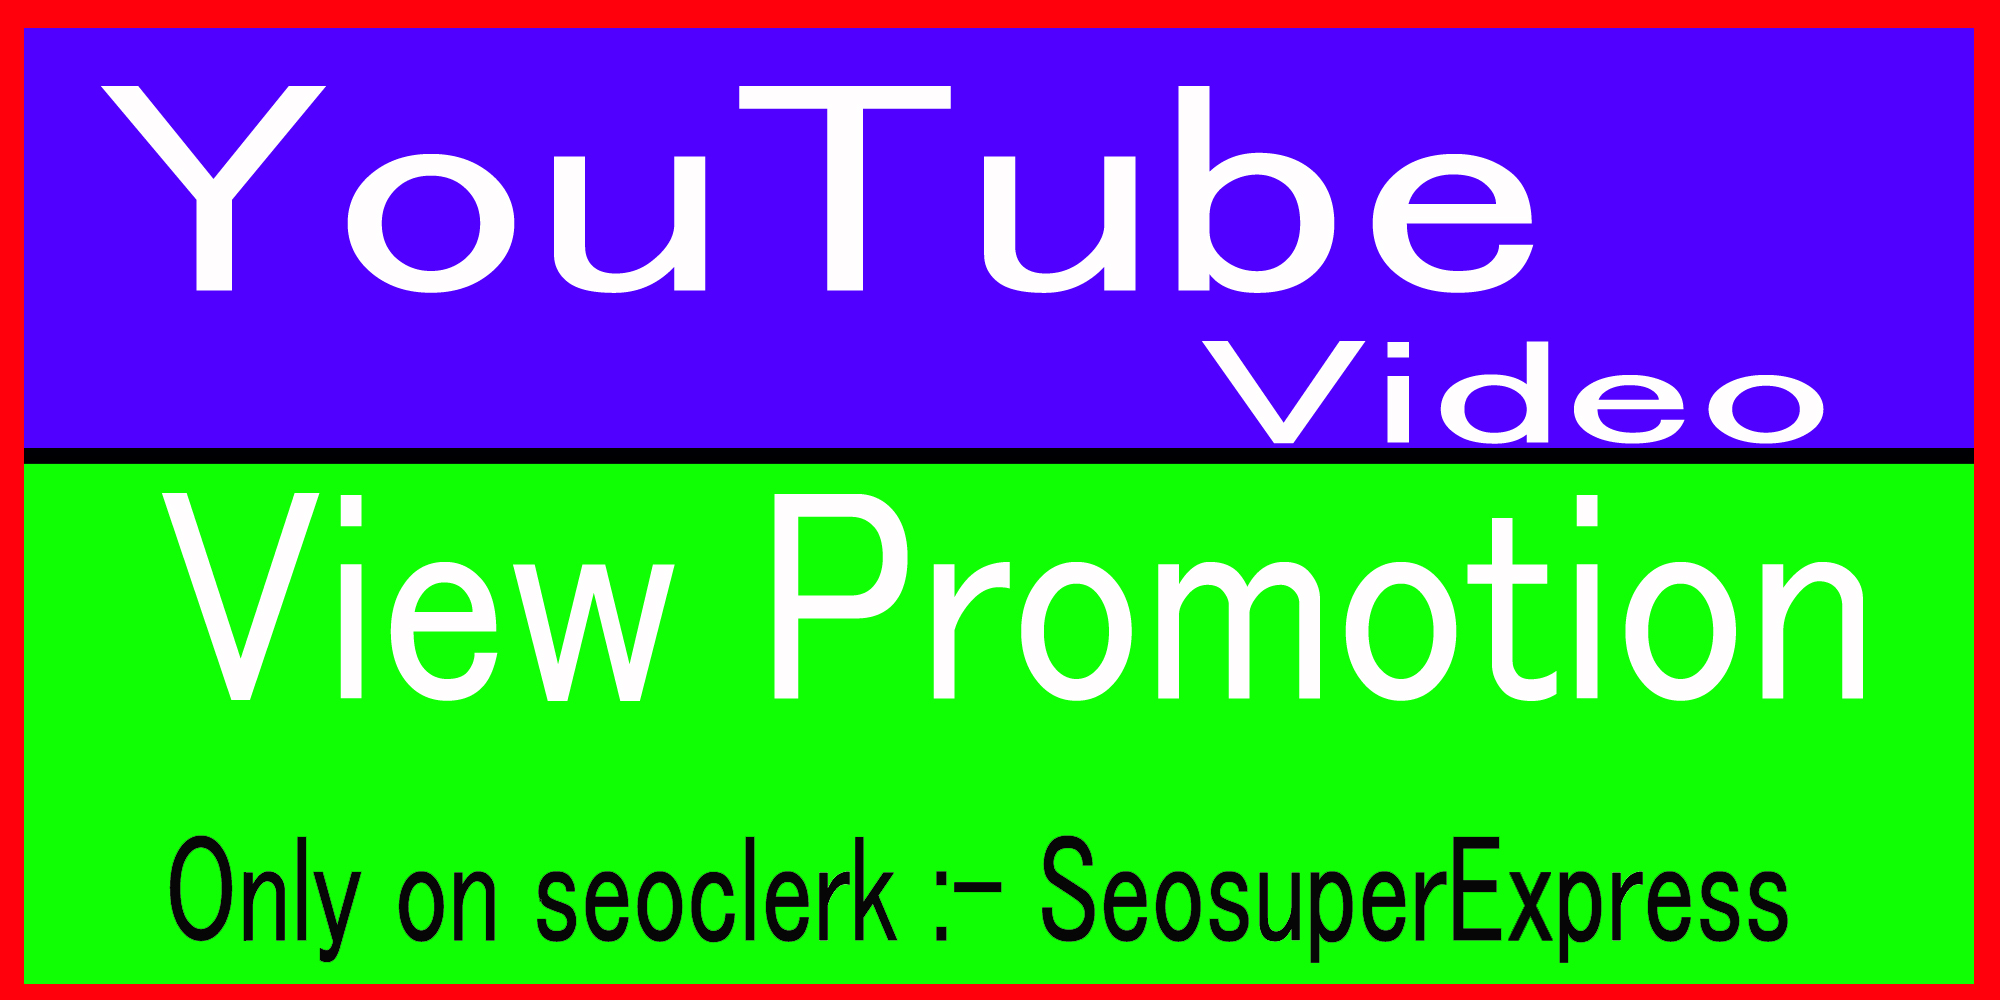 Real Youtube video promotion via social Media marketing Ranking